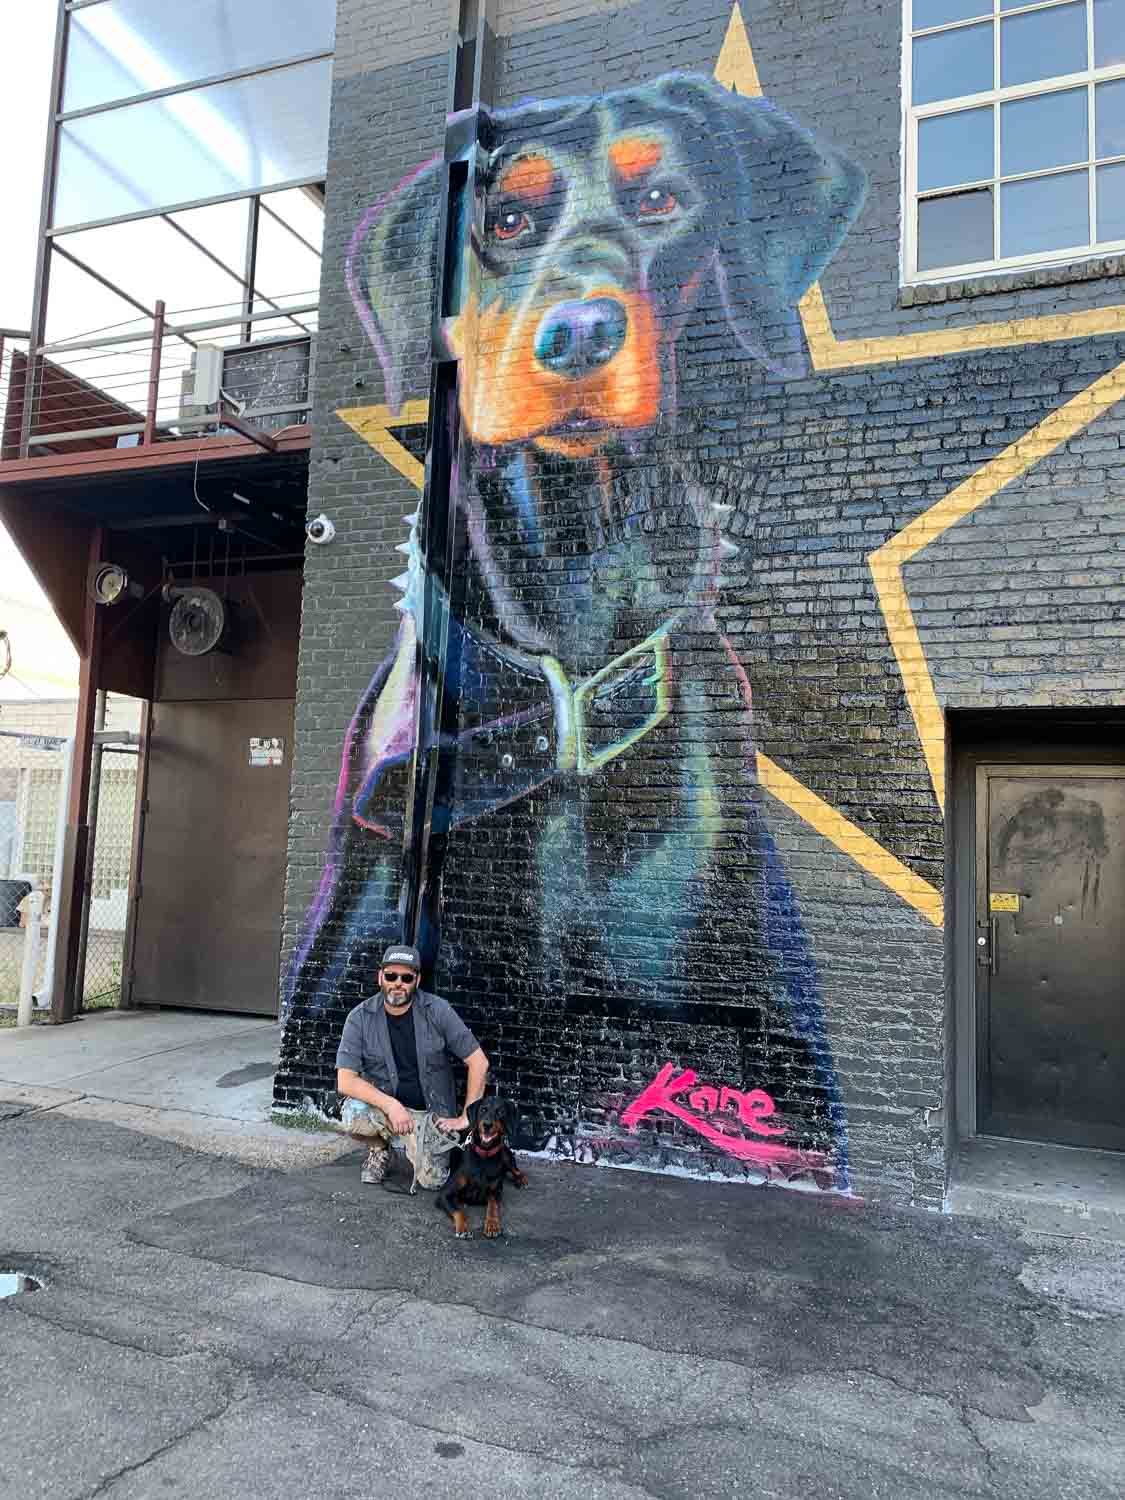 "My dobie girl ""Kita"" immortalized in the alley at 11th and Broadway. My beautiful muse pictured here with me. Oils on brick 20' x 12'. —Patrick Kane McGregor"